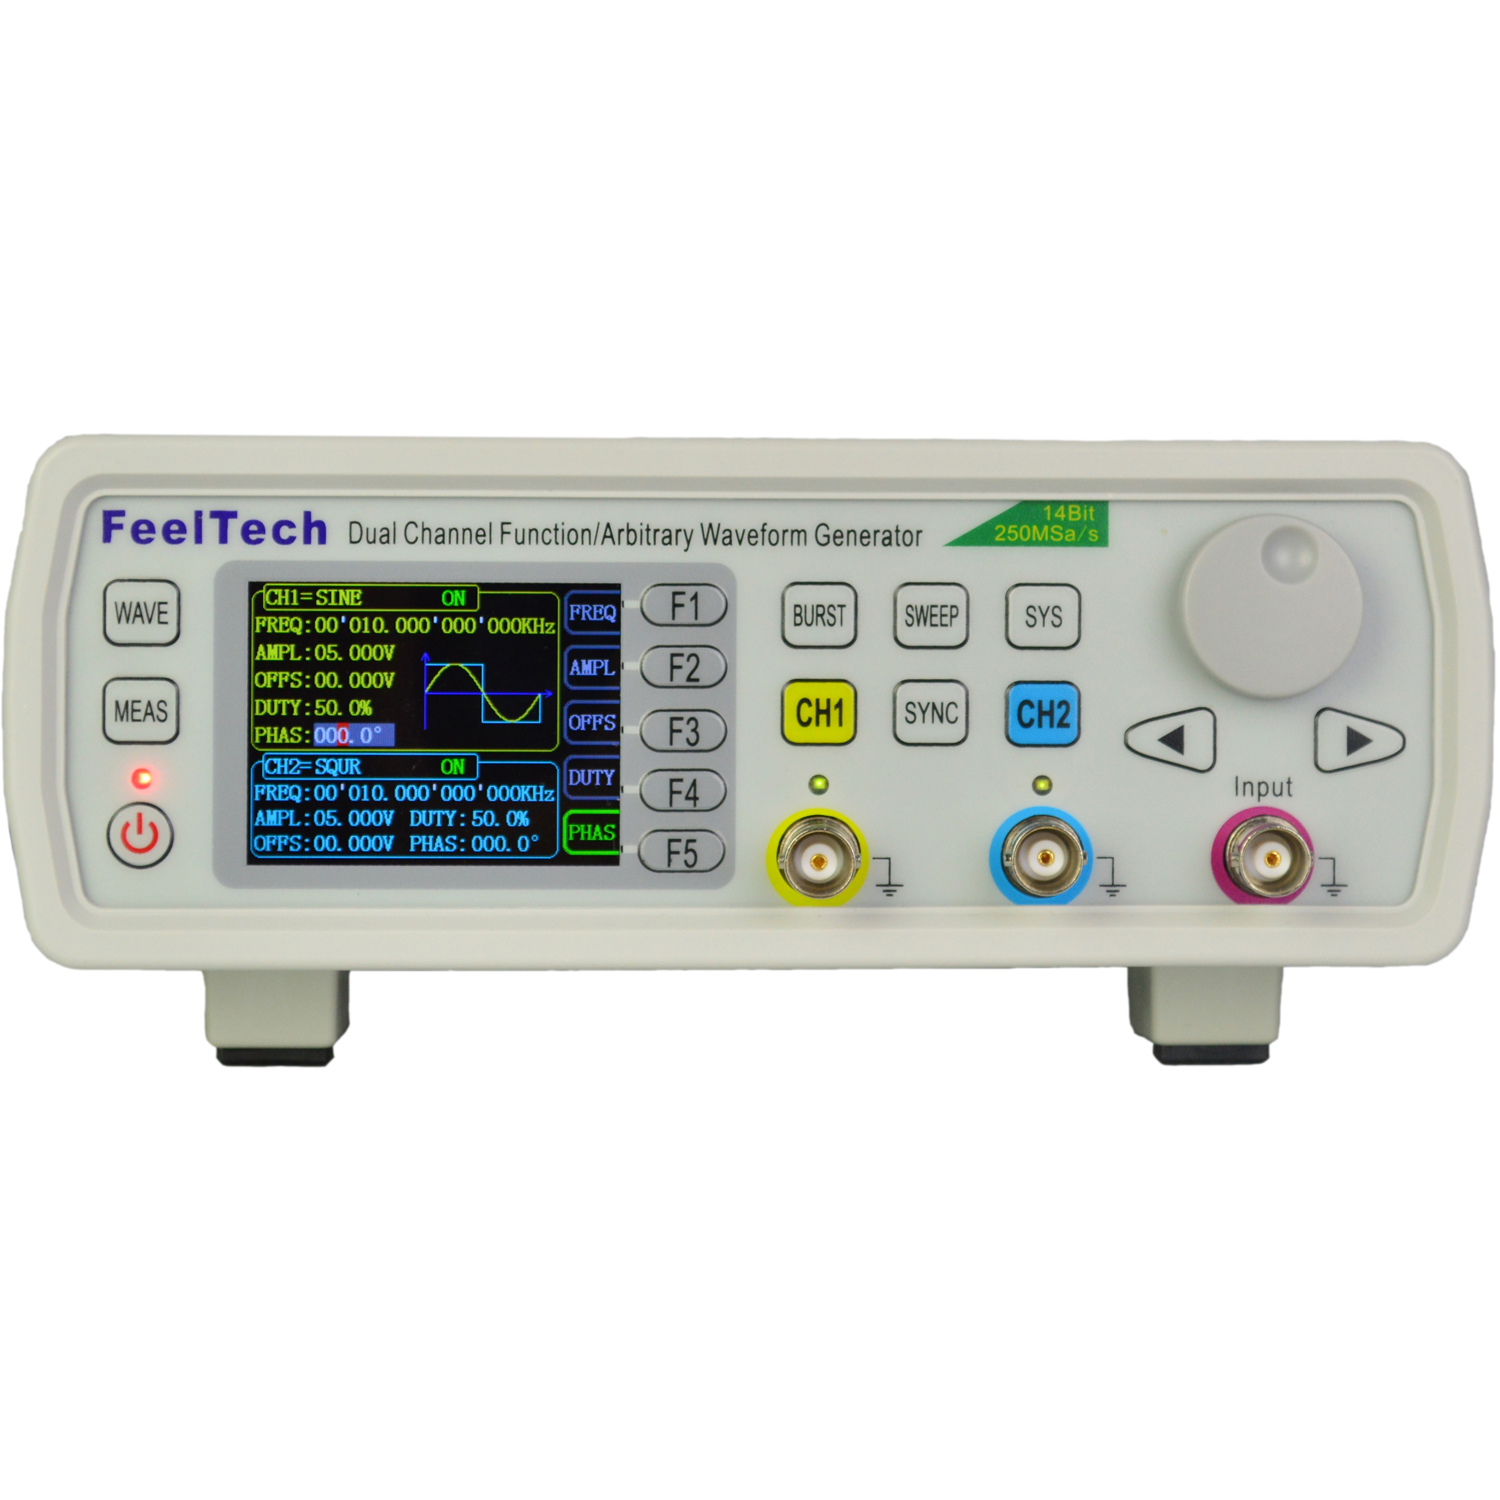 GB-60MHz High Precision Dual-channel Arbitrary Waveform Function Generator Frequency Meter 250MSa//s AC100-240V FY6800 DDS Signal Generator Counter